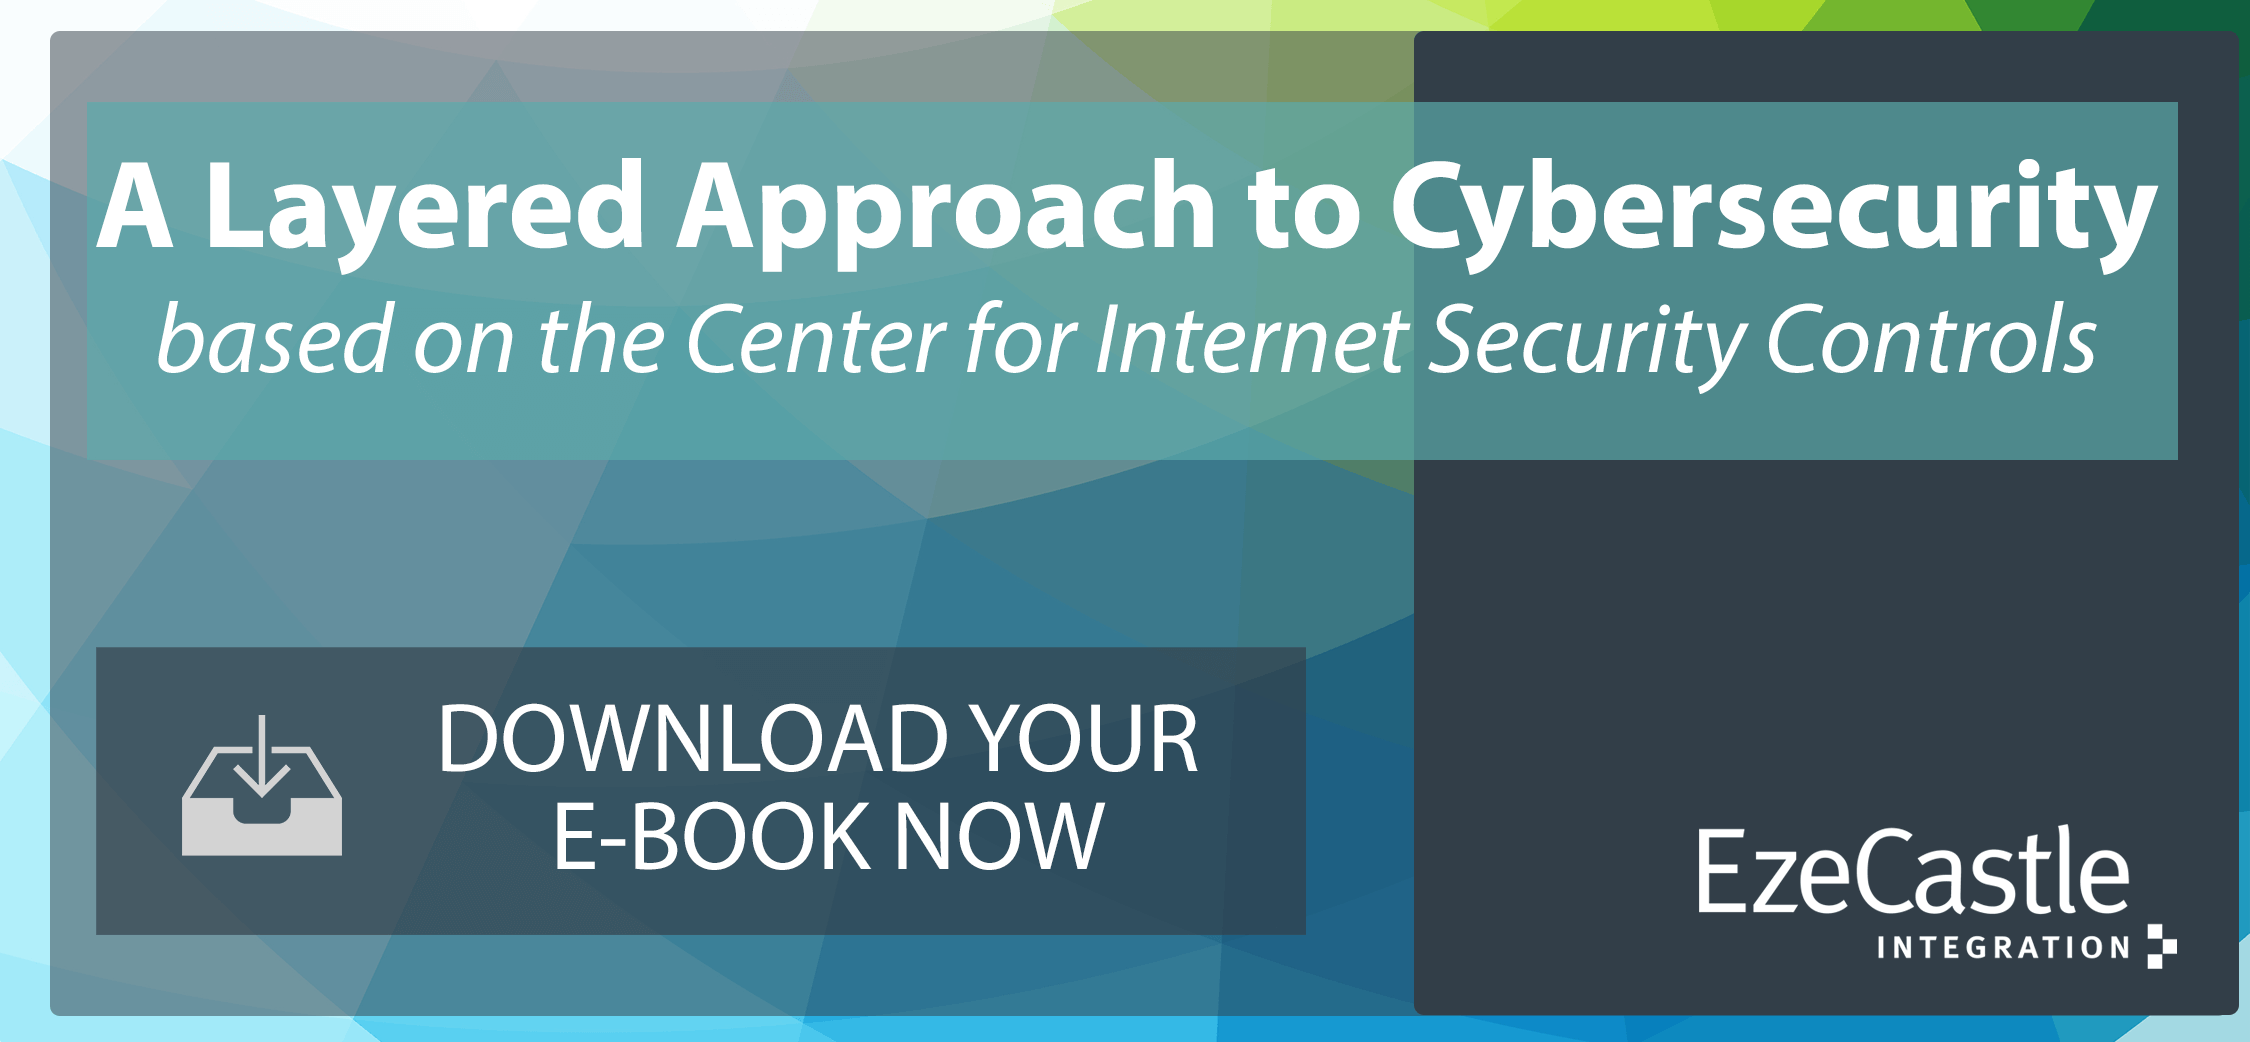 A Layered Approach to Cybersecurity eBook